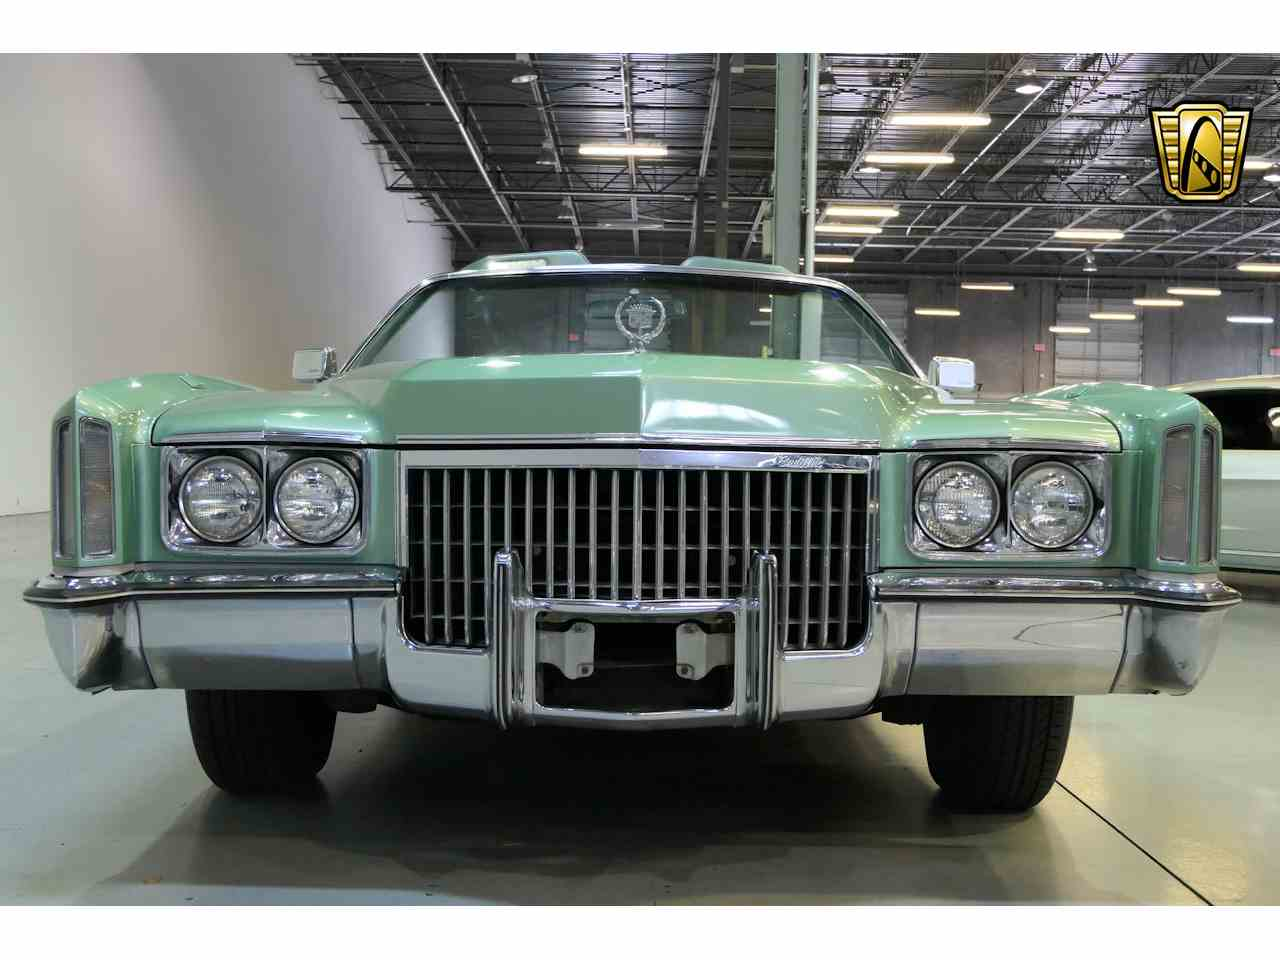 Large Picture of '72 Cadillac Eldorado located in Florida - $25,995.00 Offered by Gateway Classic Cars - Orlando - NEP5